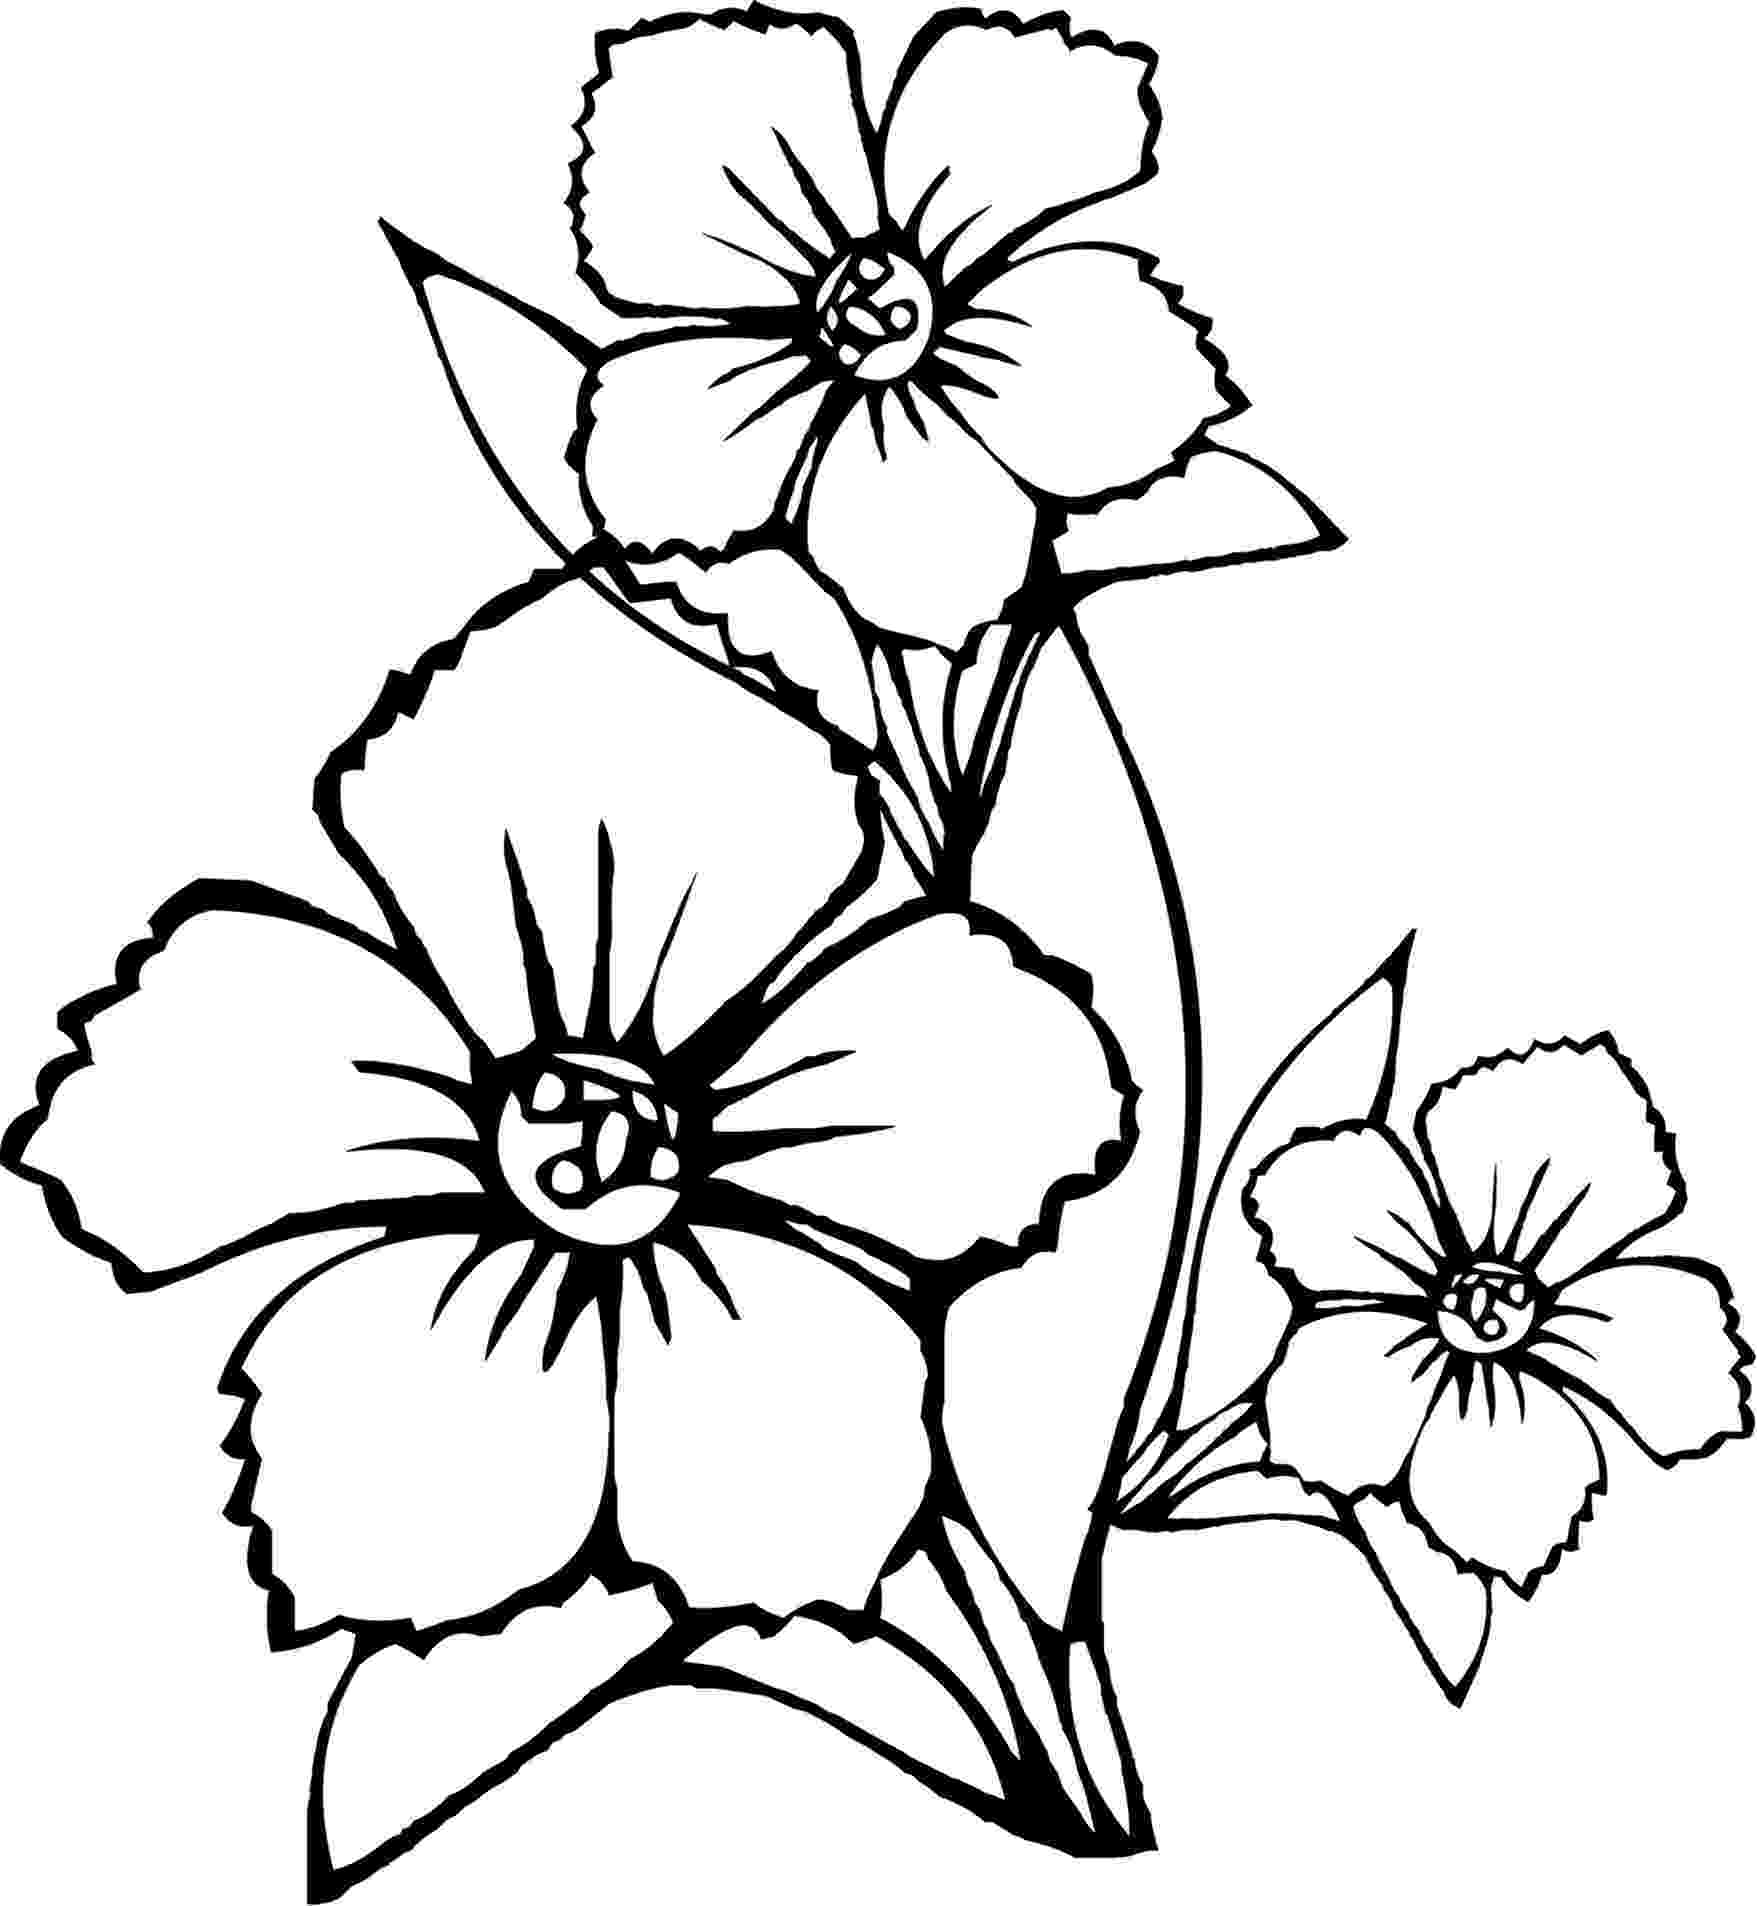 flower pictures to print and color free printable flower coloring pages for kids best color flower print and pictures to